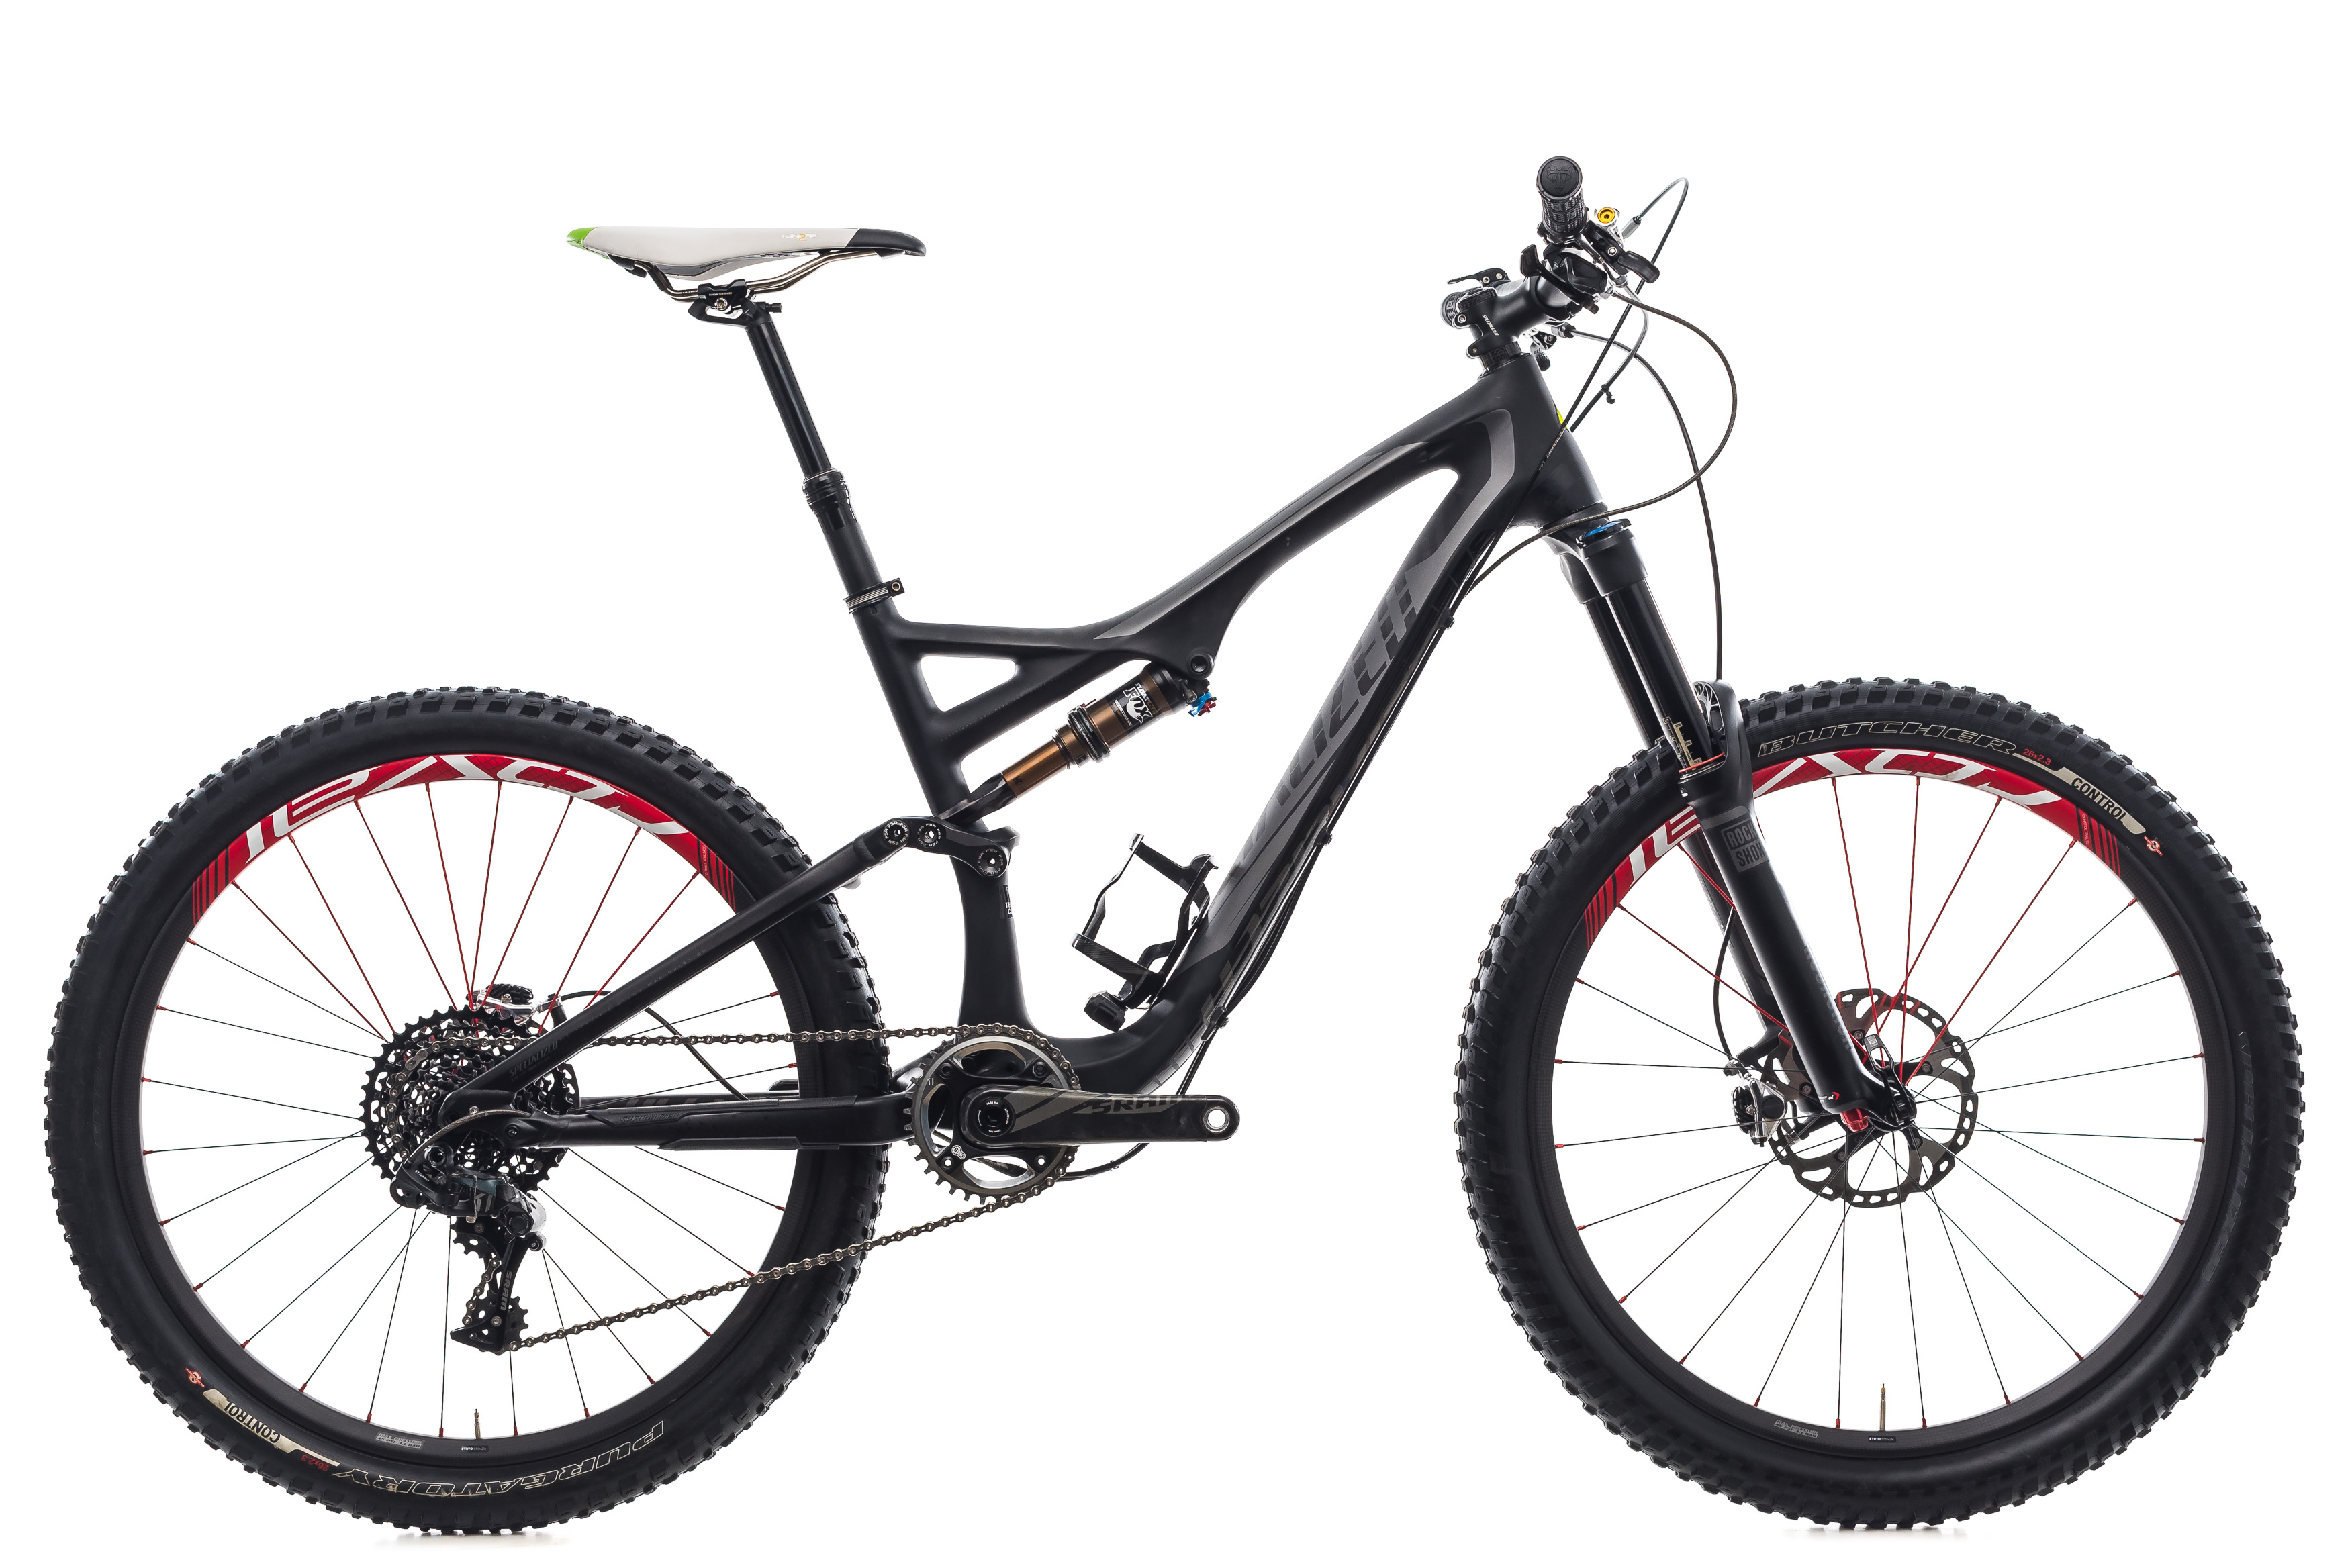 ced158fadc3 Details about 2014 Specialized Stumpjumper FSR Expert Carbon Evo Medium 26